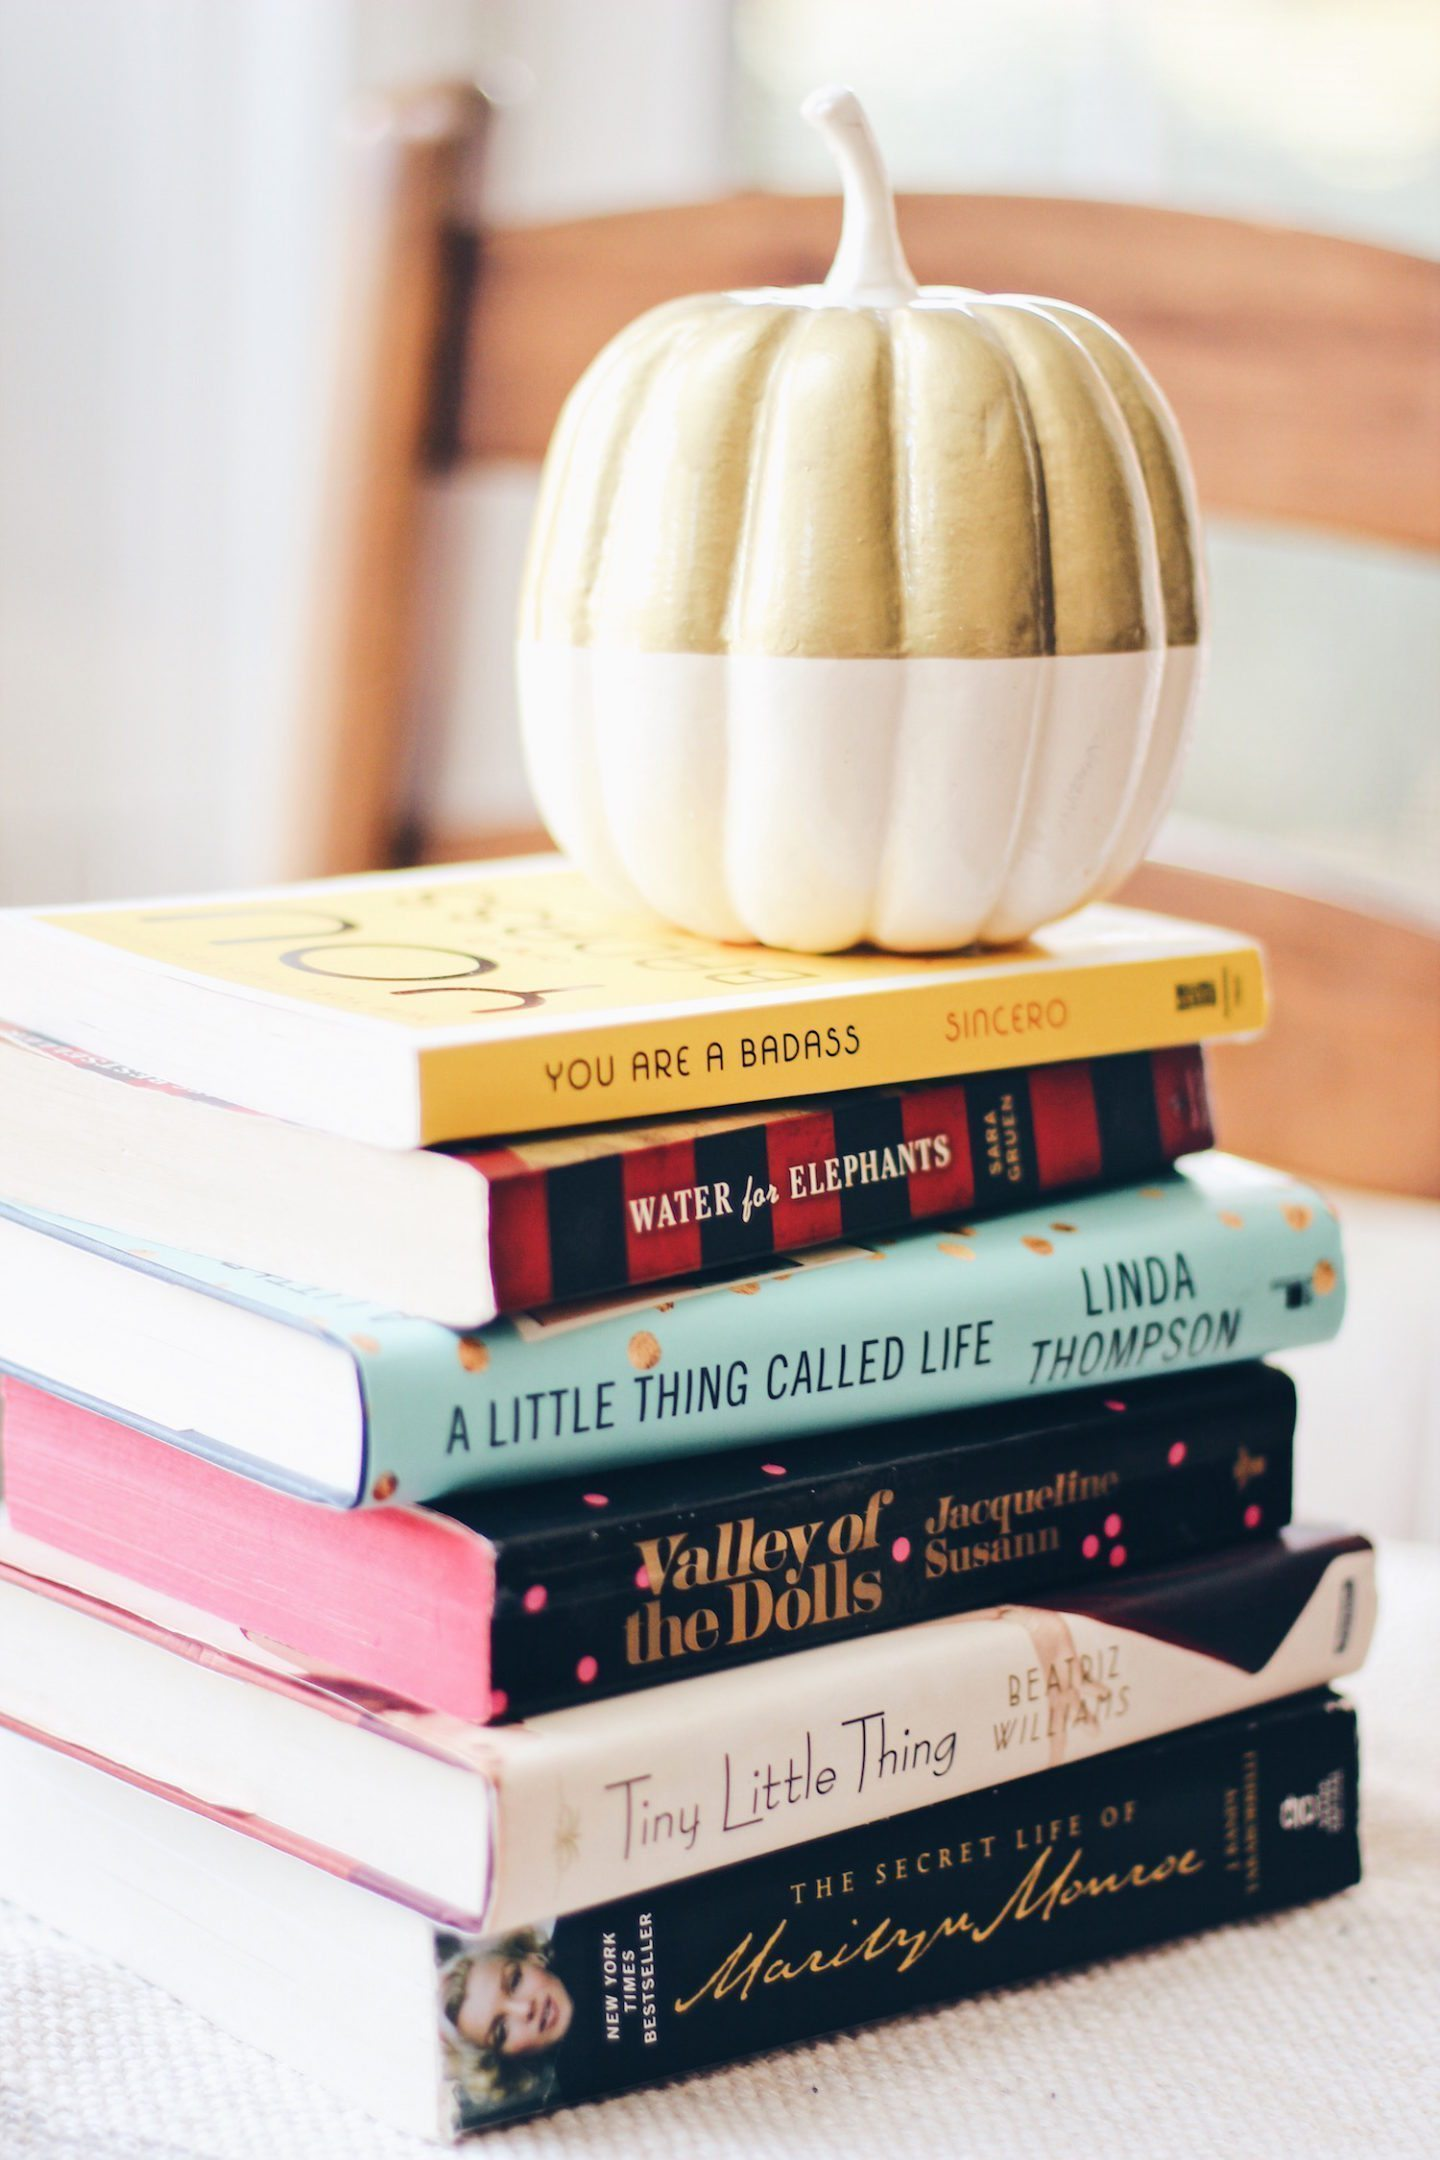 6 Books to Add to Your Fall Reading List